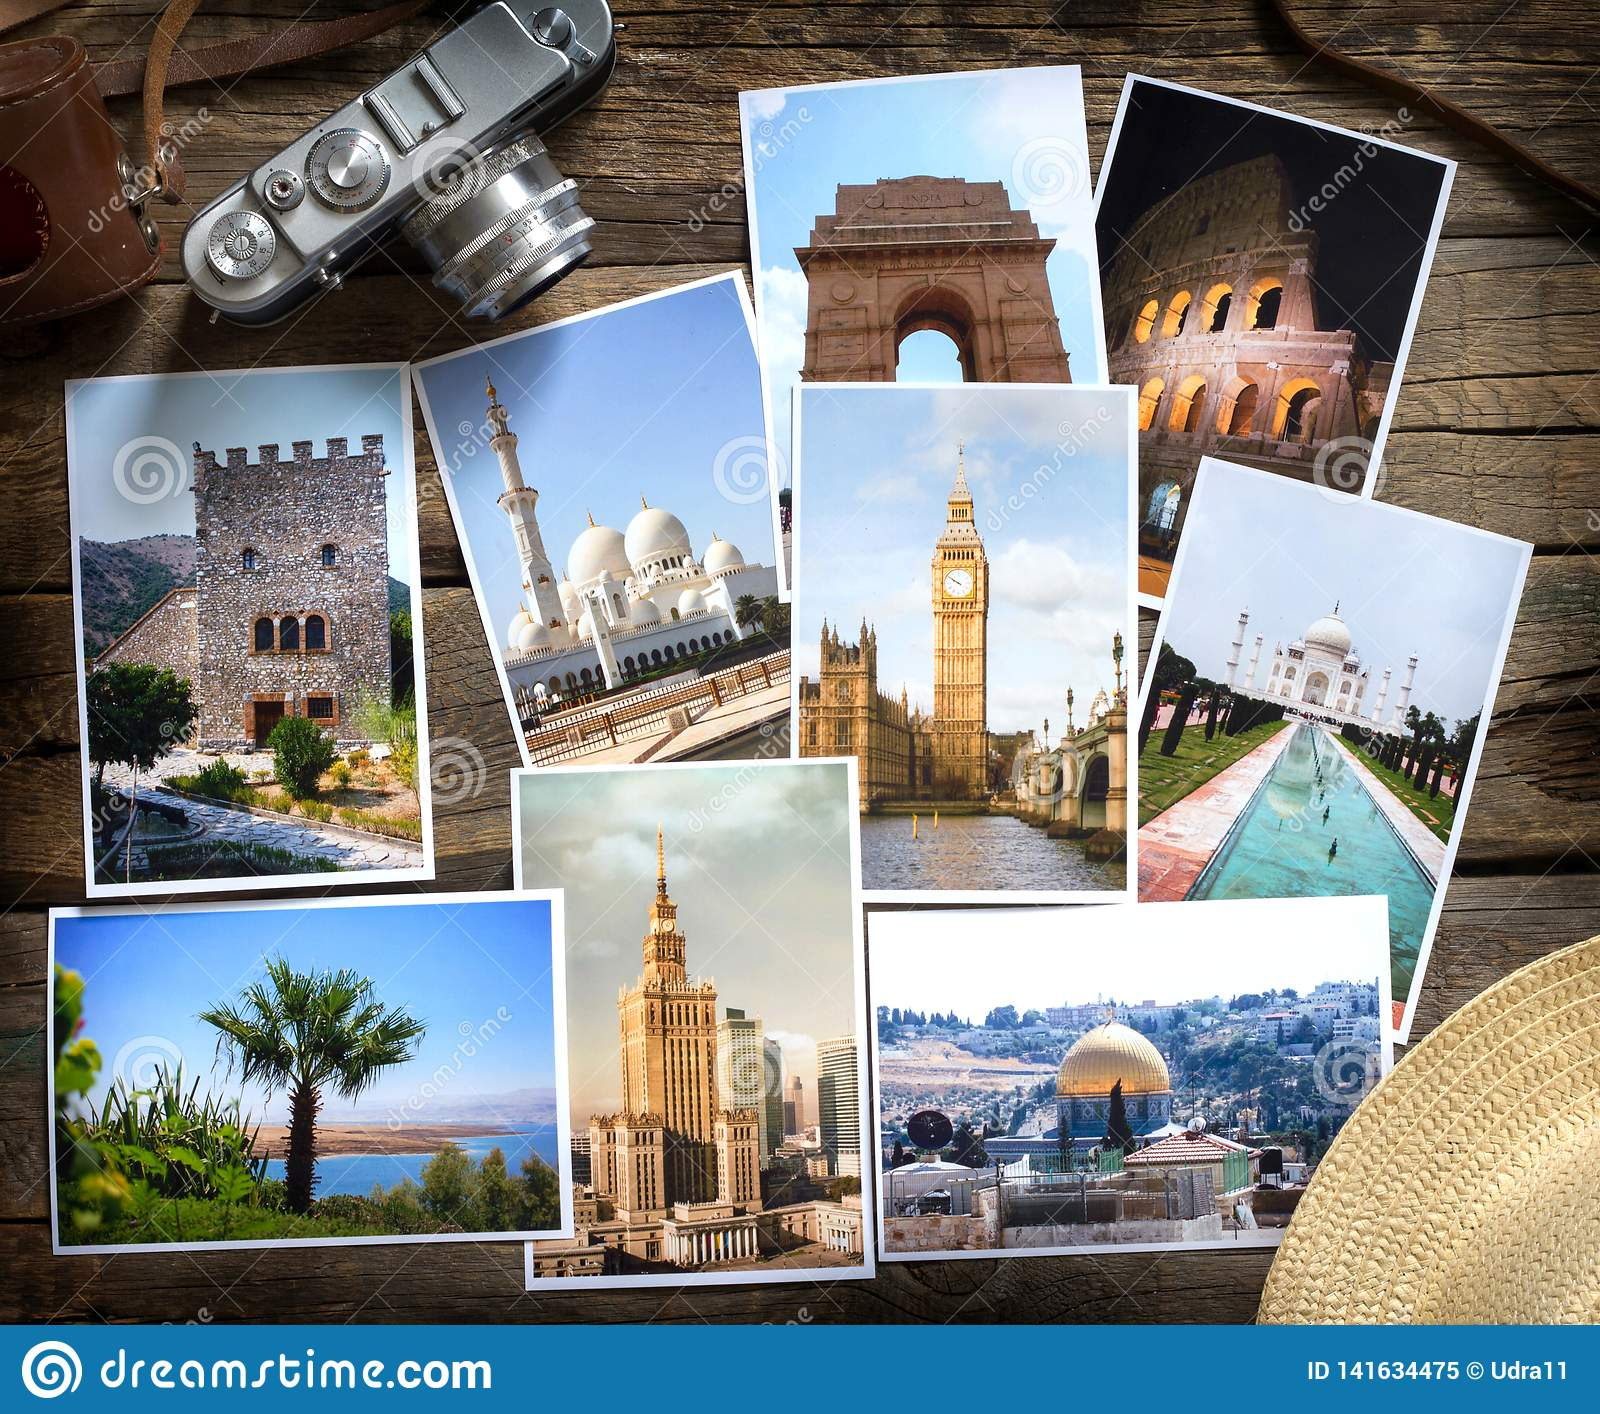 Old retro pictures and camera on wooden table globetrotter photography travel collage concept